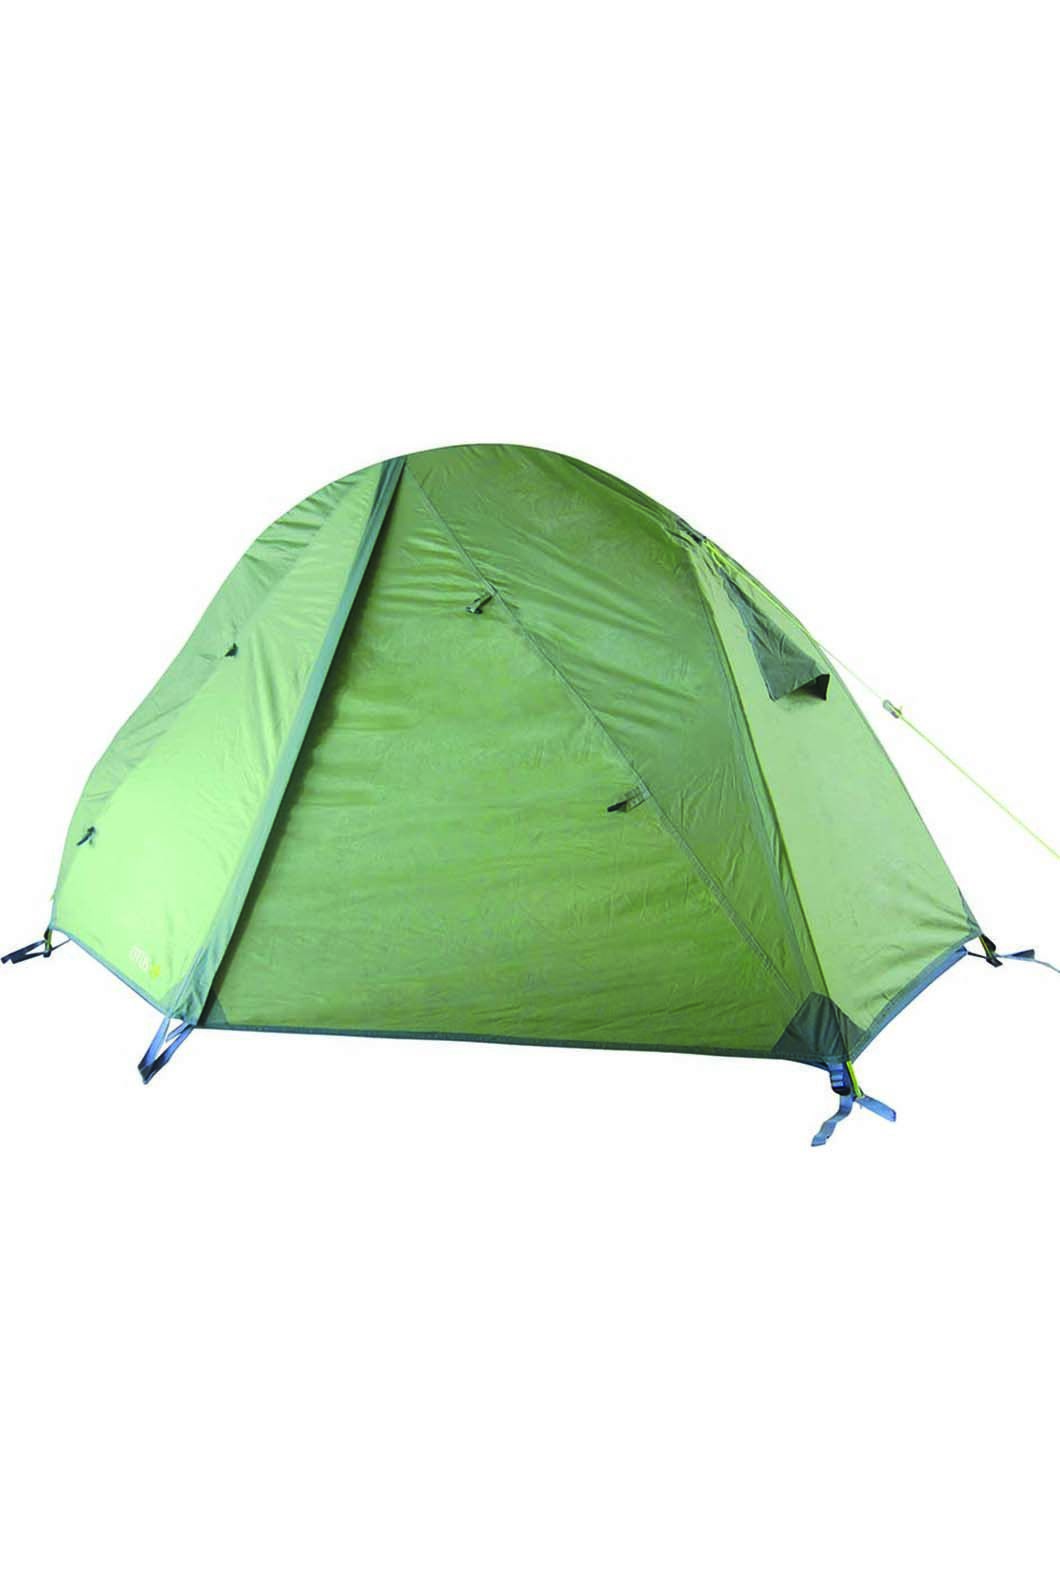 Outrak Otus Hiking Tent (One Person), None, hi-res